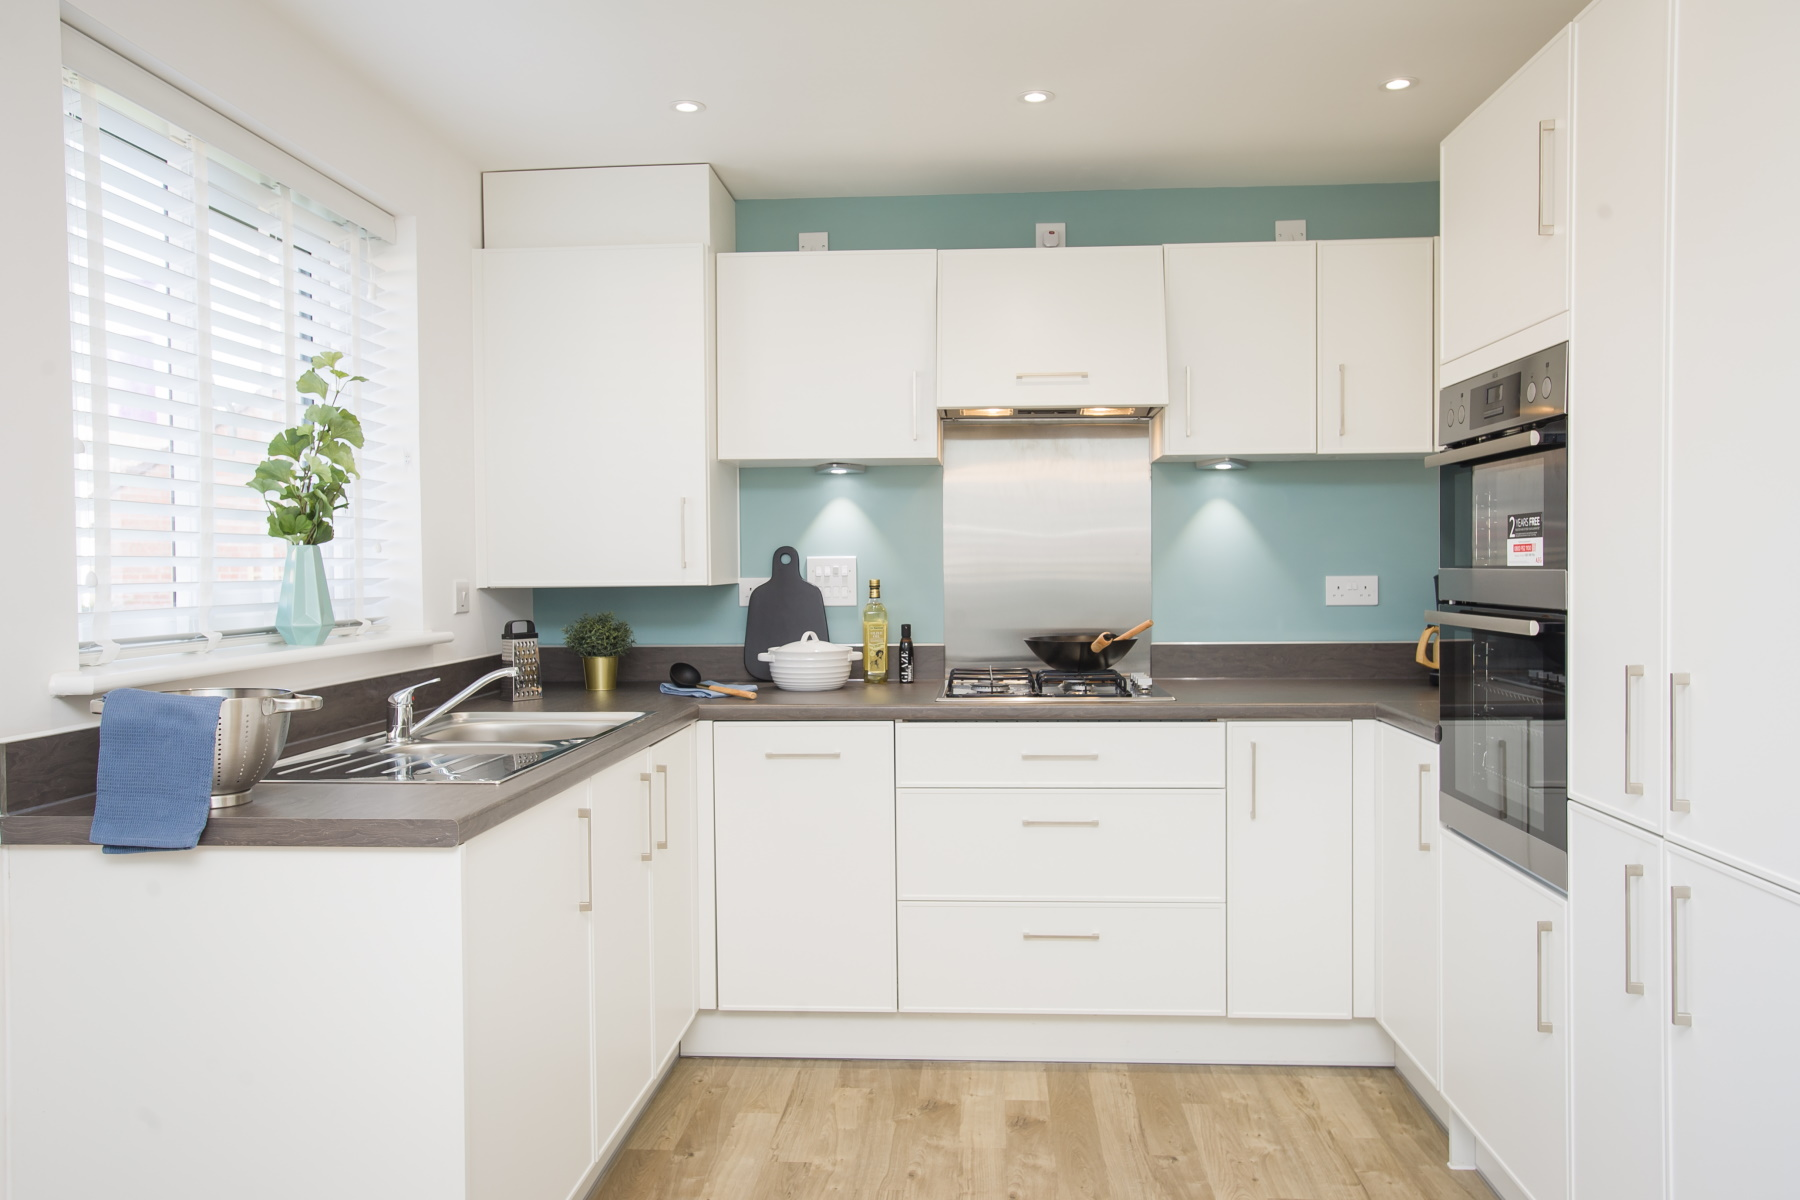 TW Exeter - Mountbatten Mews - Gosford kitchen 5